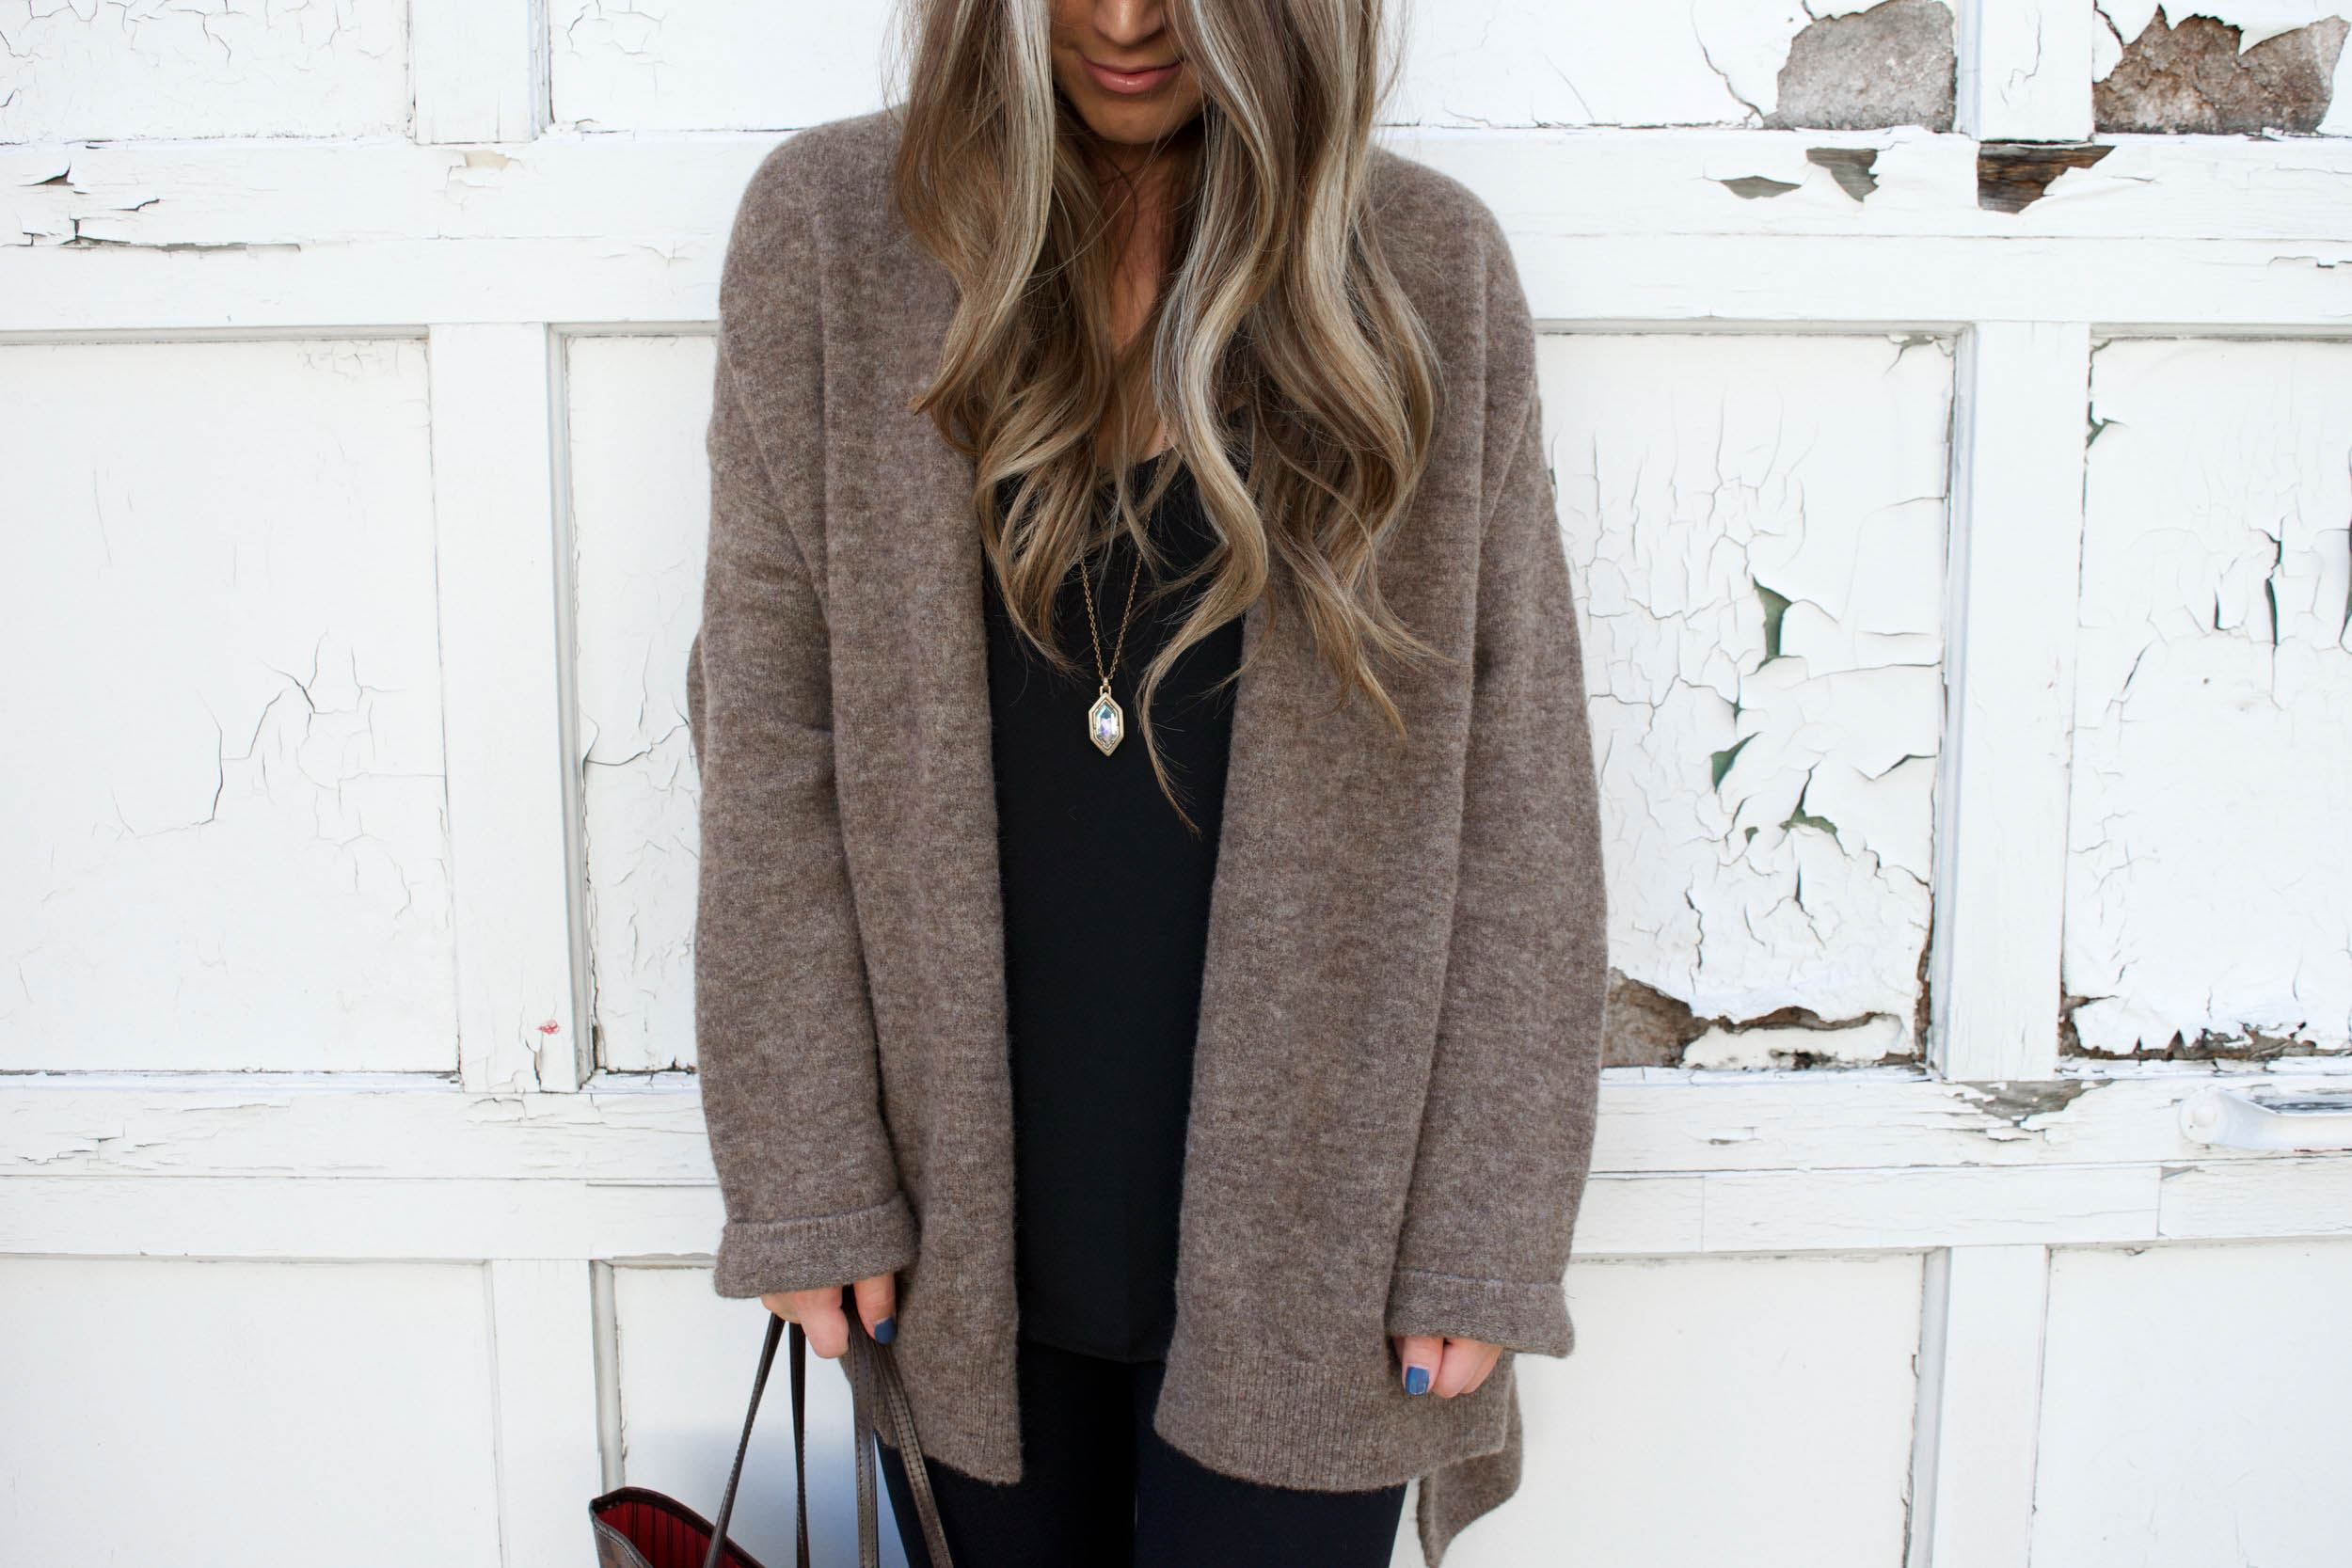 fall outfit idea / all black outfit for fall / cozy cardigan